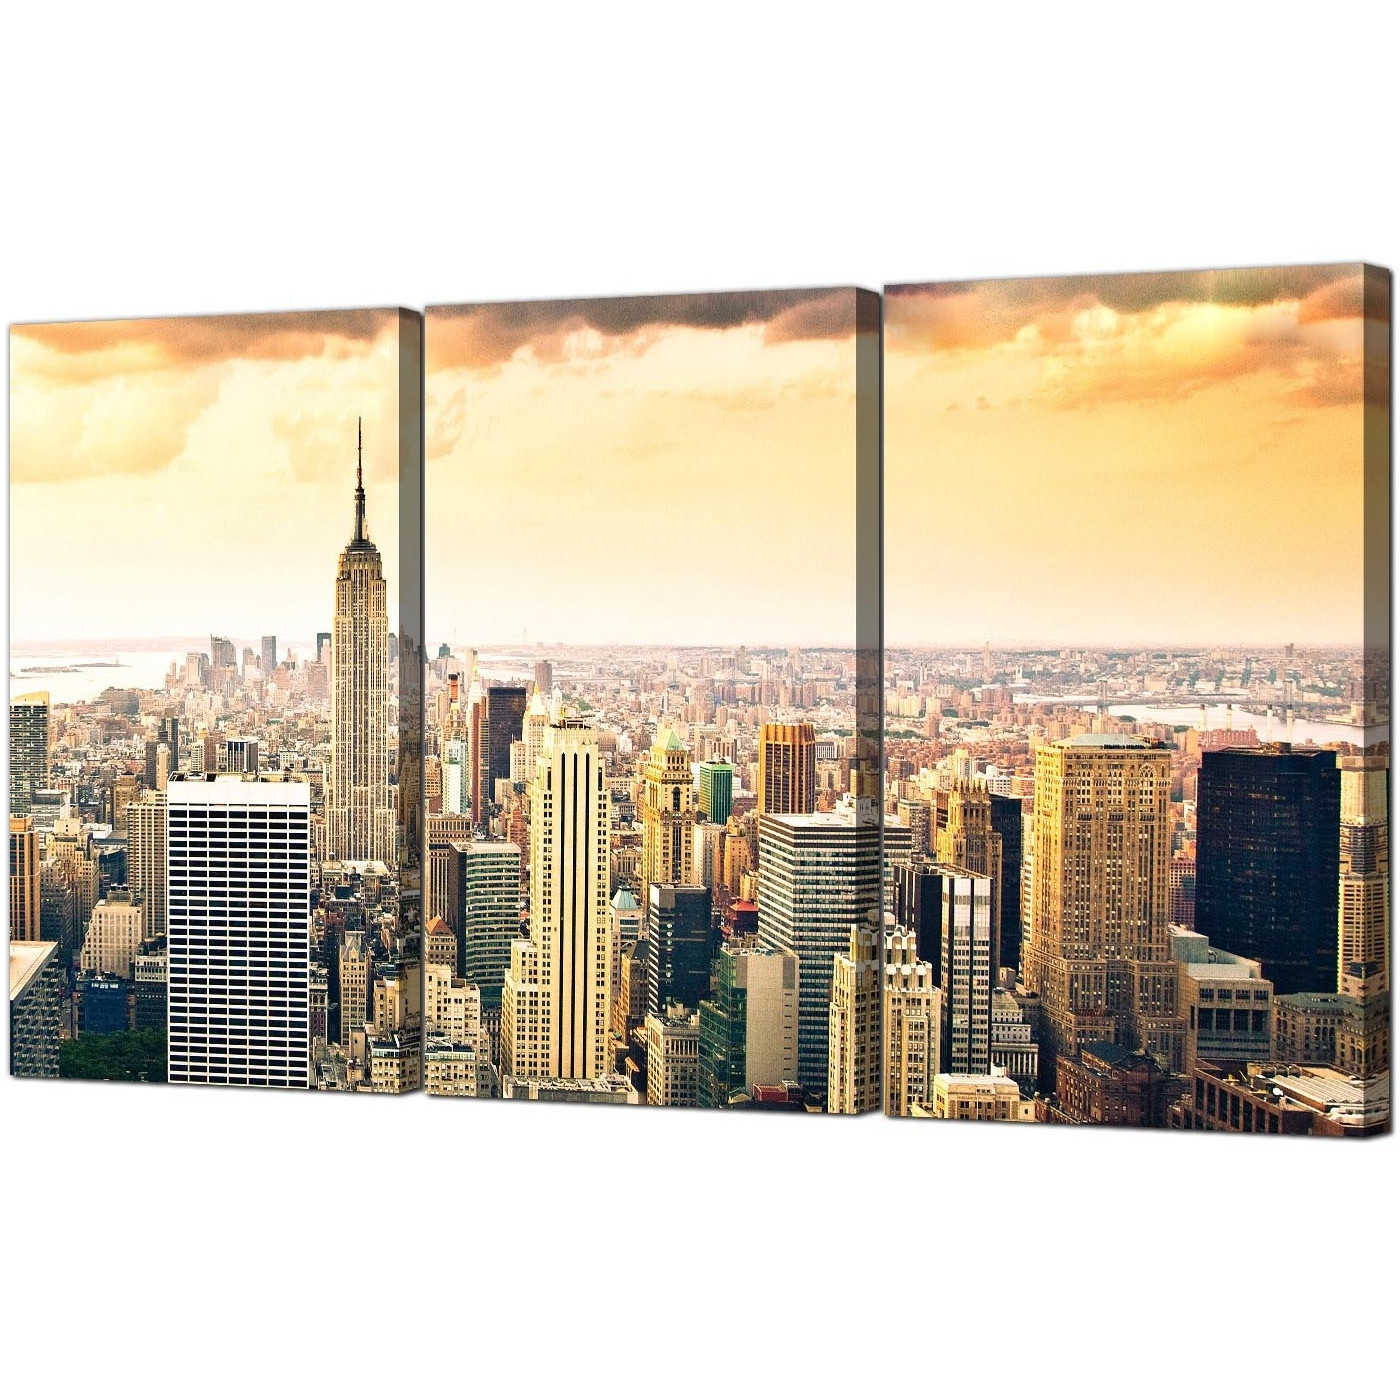 Most Current New York Canvas Wall Art For Extra Large New York Skyline Canvas Pictures 3 Panel For Your Bedroom (View 6 of 15)